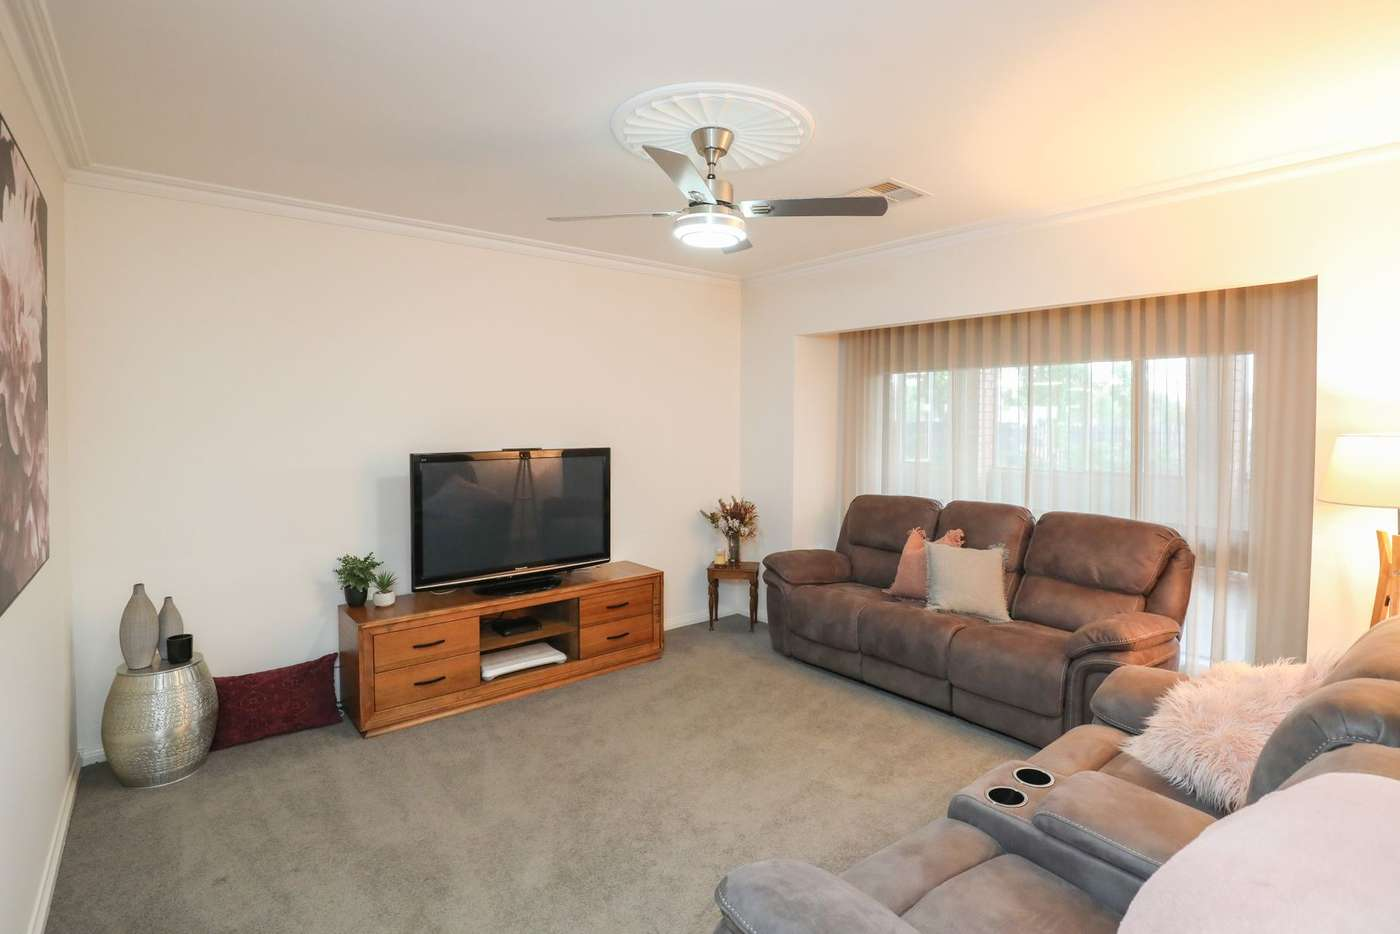 Fifth view of Homely house listing, 3350 Deakin Avenue, Mildura VIC 3500